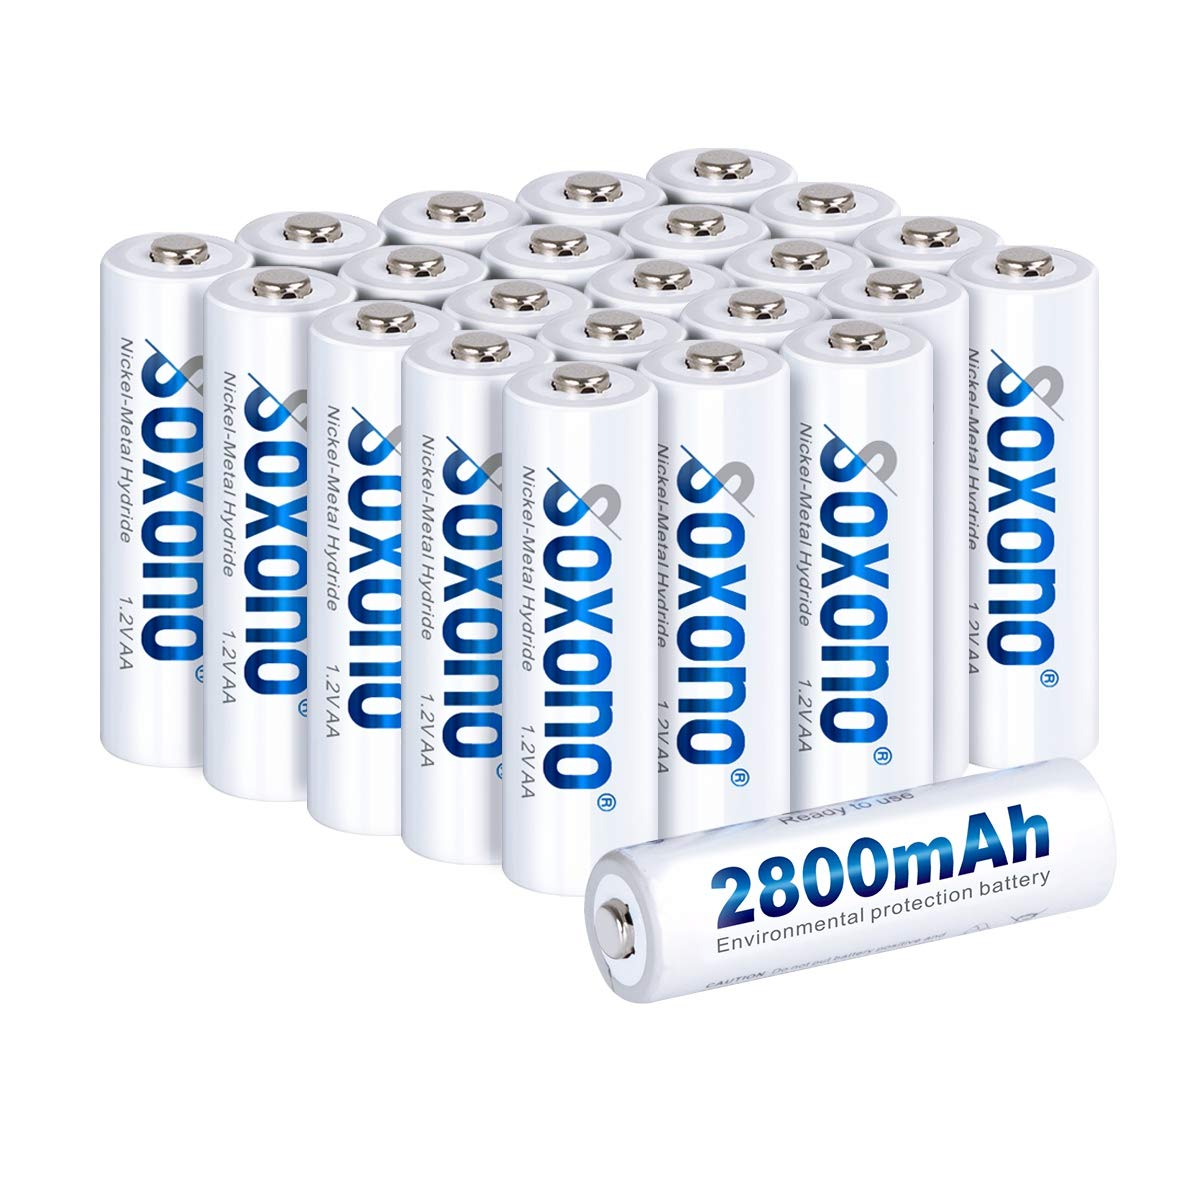 Sonoxo AA Batteries Rechargeable,AA Rechargeable Batteries 2800mAh High Capacity AA Battery 1.2V Ni-MH Low Self Discharge 24 Pack by SOXONO